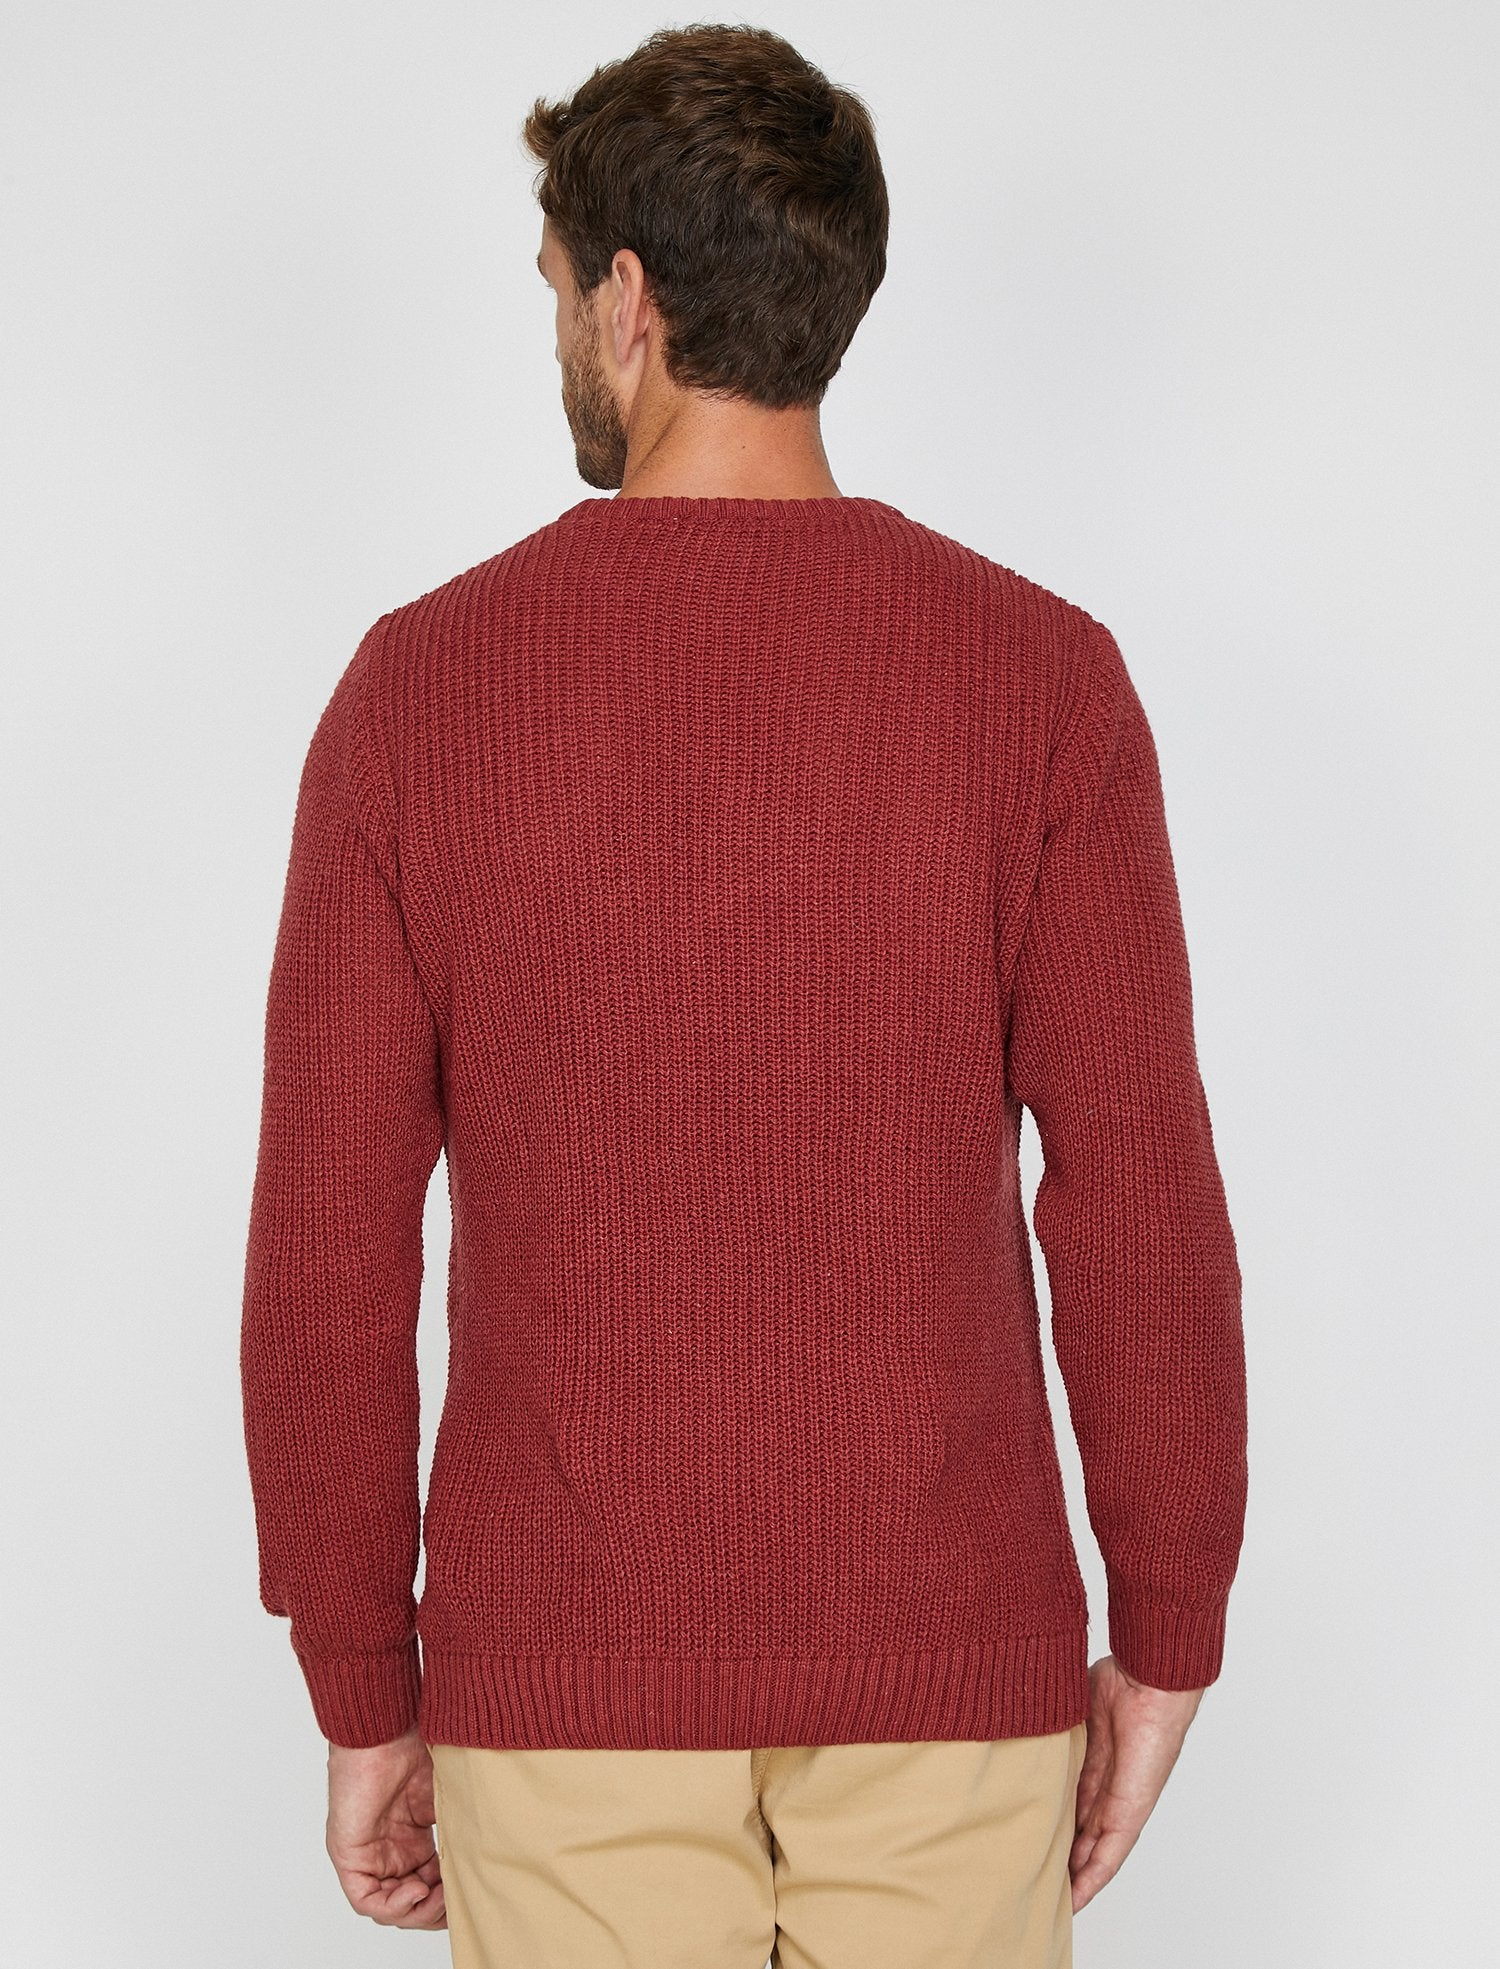 Crew Neck Sailor Sweater in Red Clay